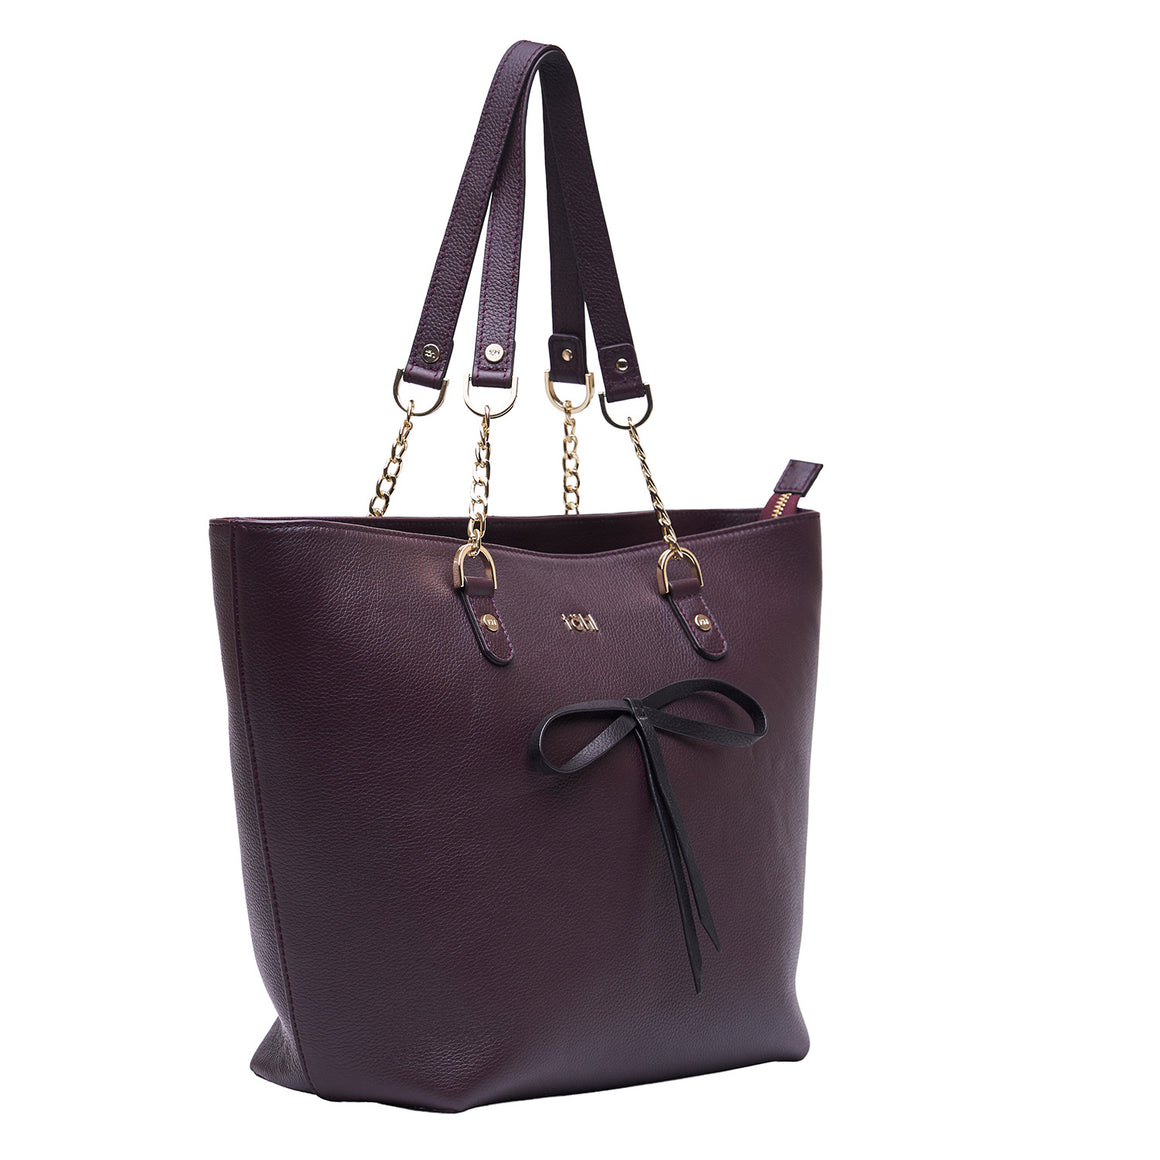 TT 0011 - TOHL WALLACE WOMEN'S TOTE BAG - PLUM